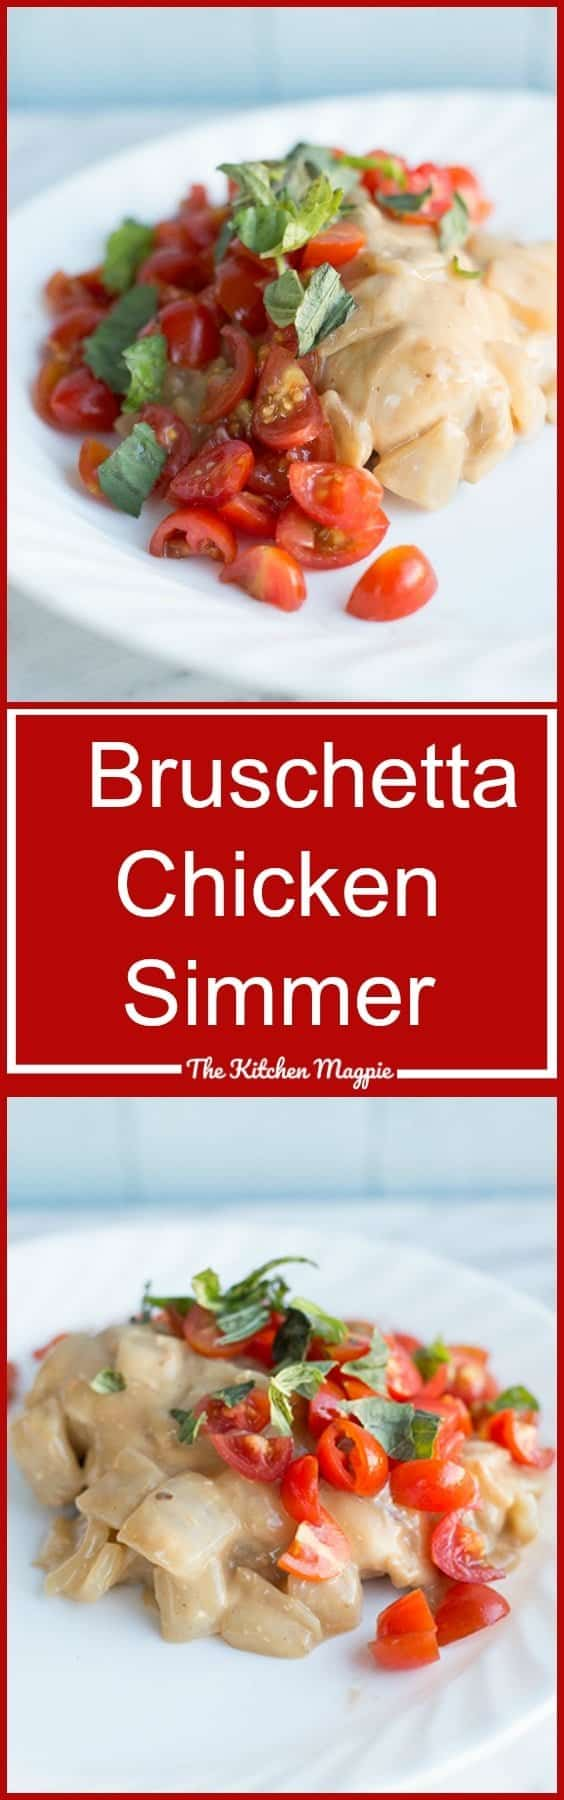 Bruschetta chicken simmer - the perfect fast and fresh meal for those busy weekday dinners!